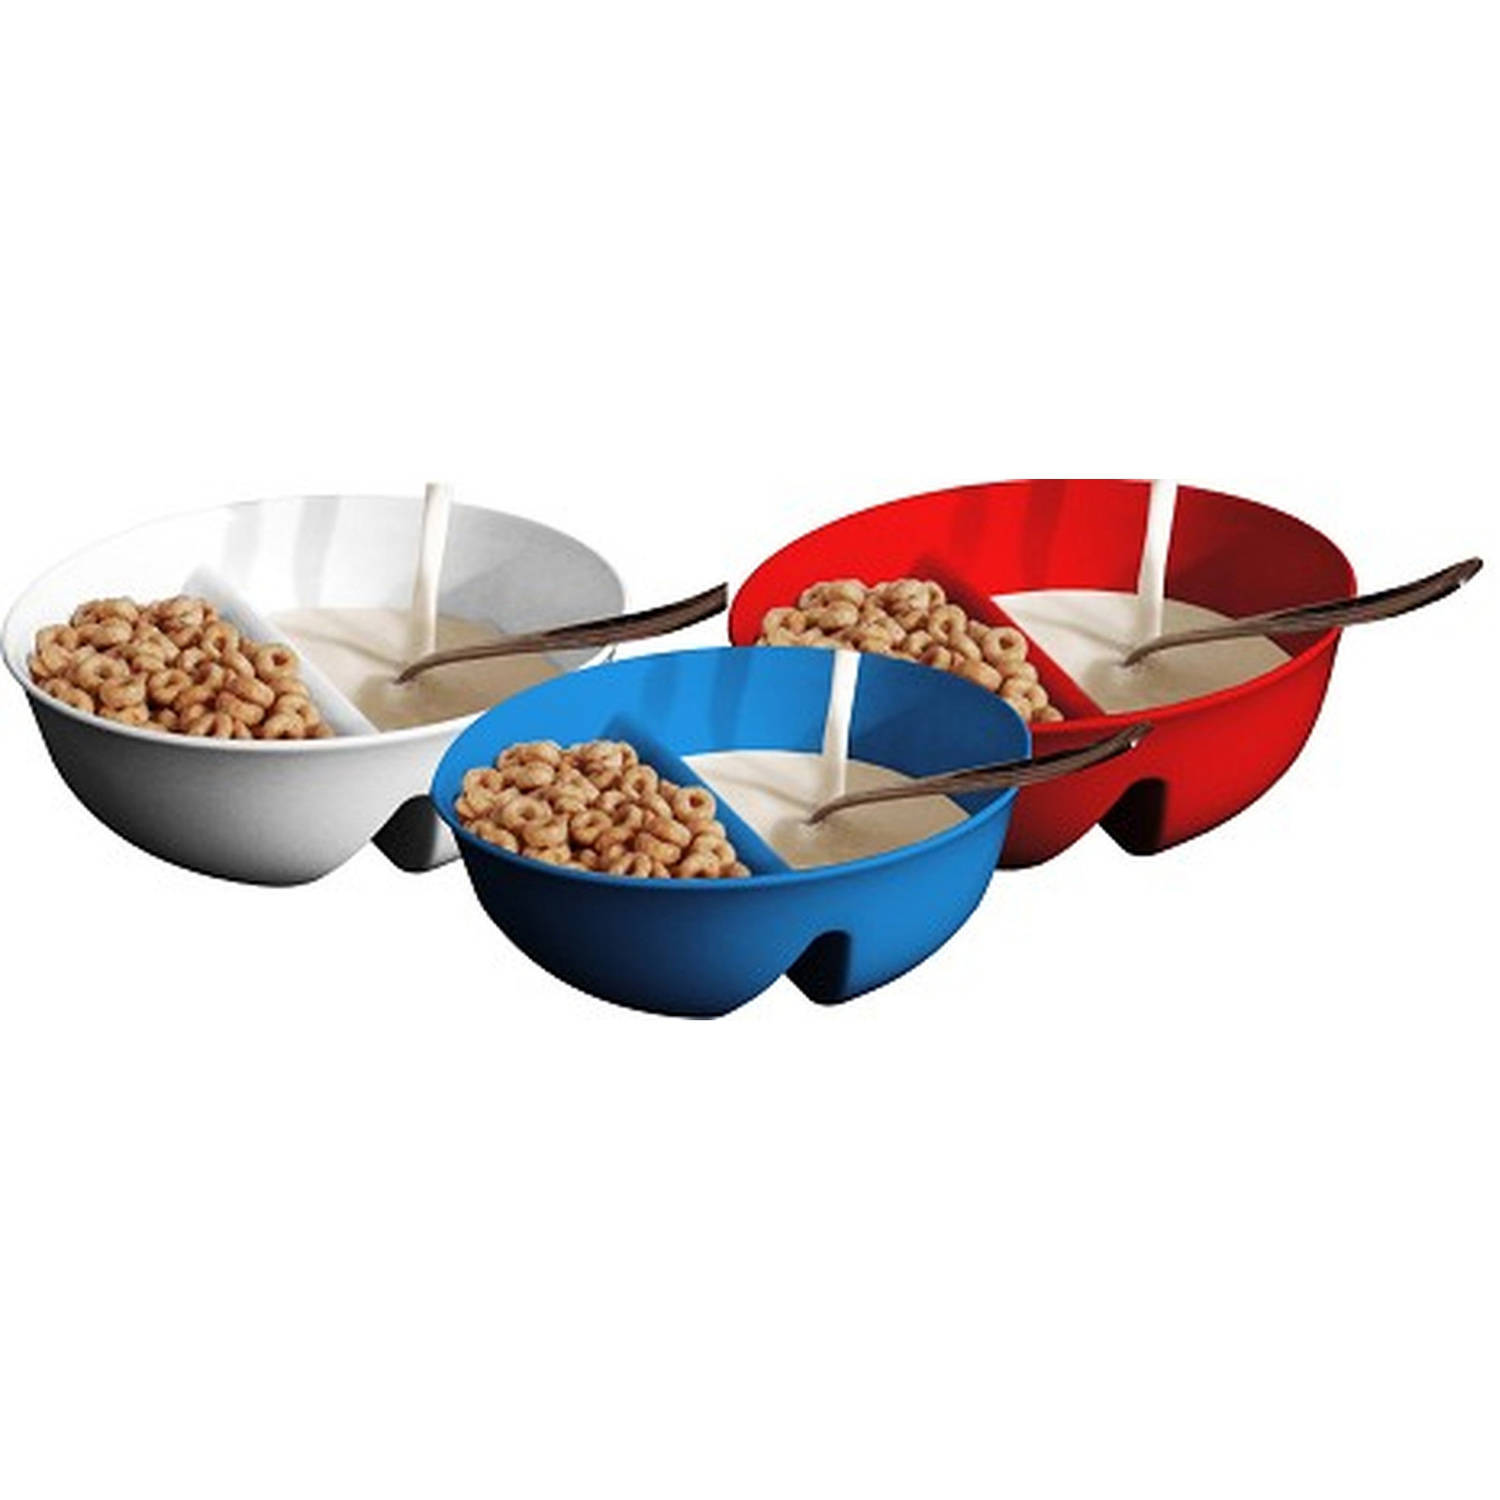 Just Crunch Anti-Soggy Bowl, 3-Pack